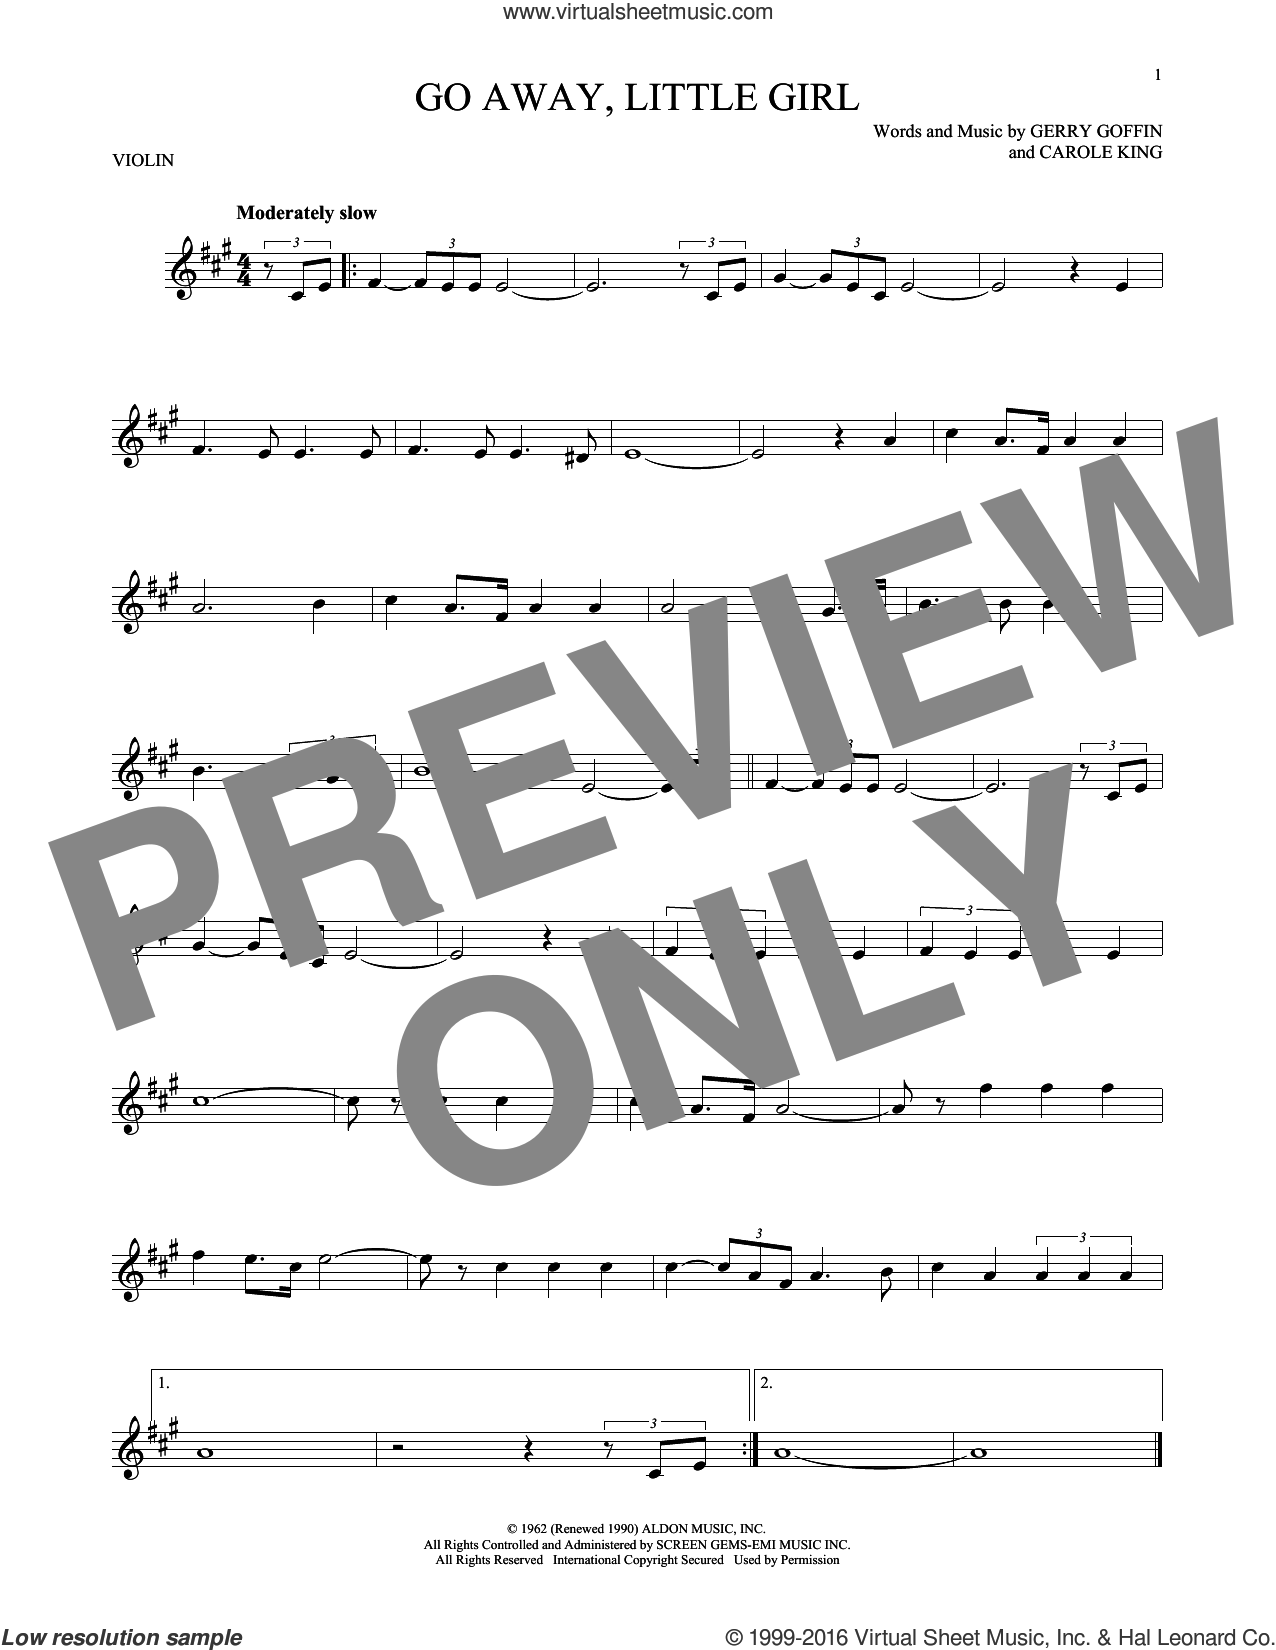 Go Away, Little Girl sheet music for violin solo by Donny Osmond, Steve Lawrence, Carole King and Gerry Goffin, intermediate violin. Score Image Preview.